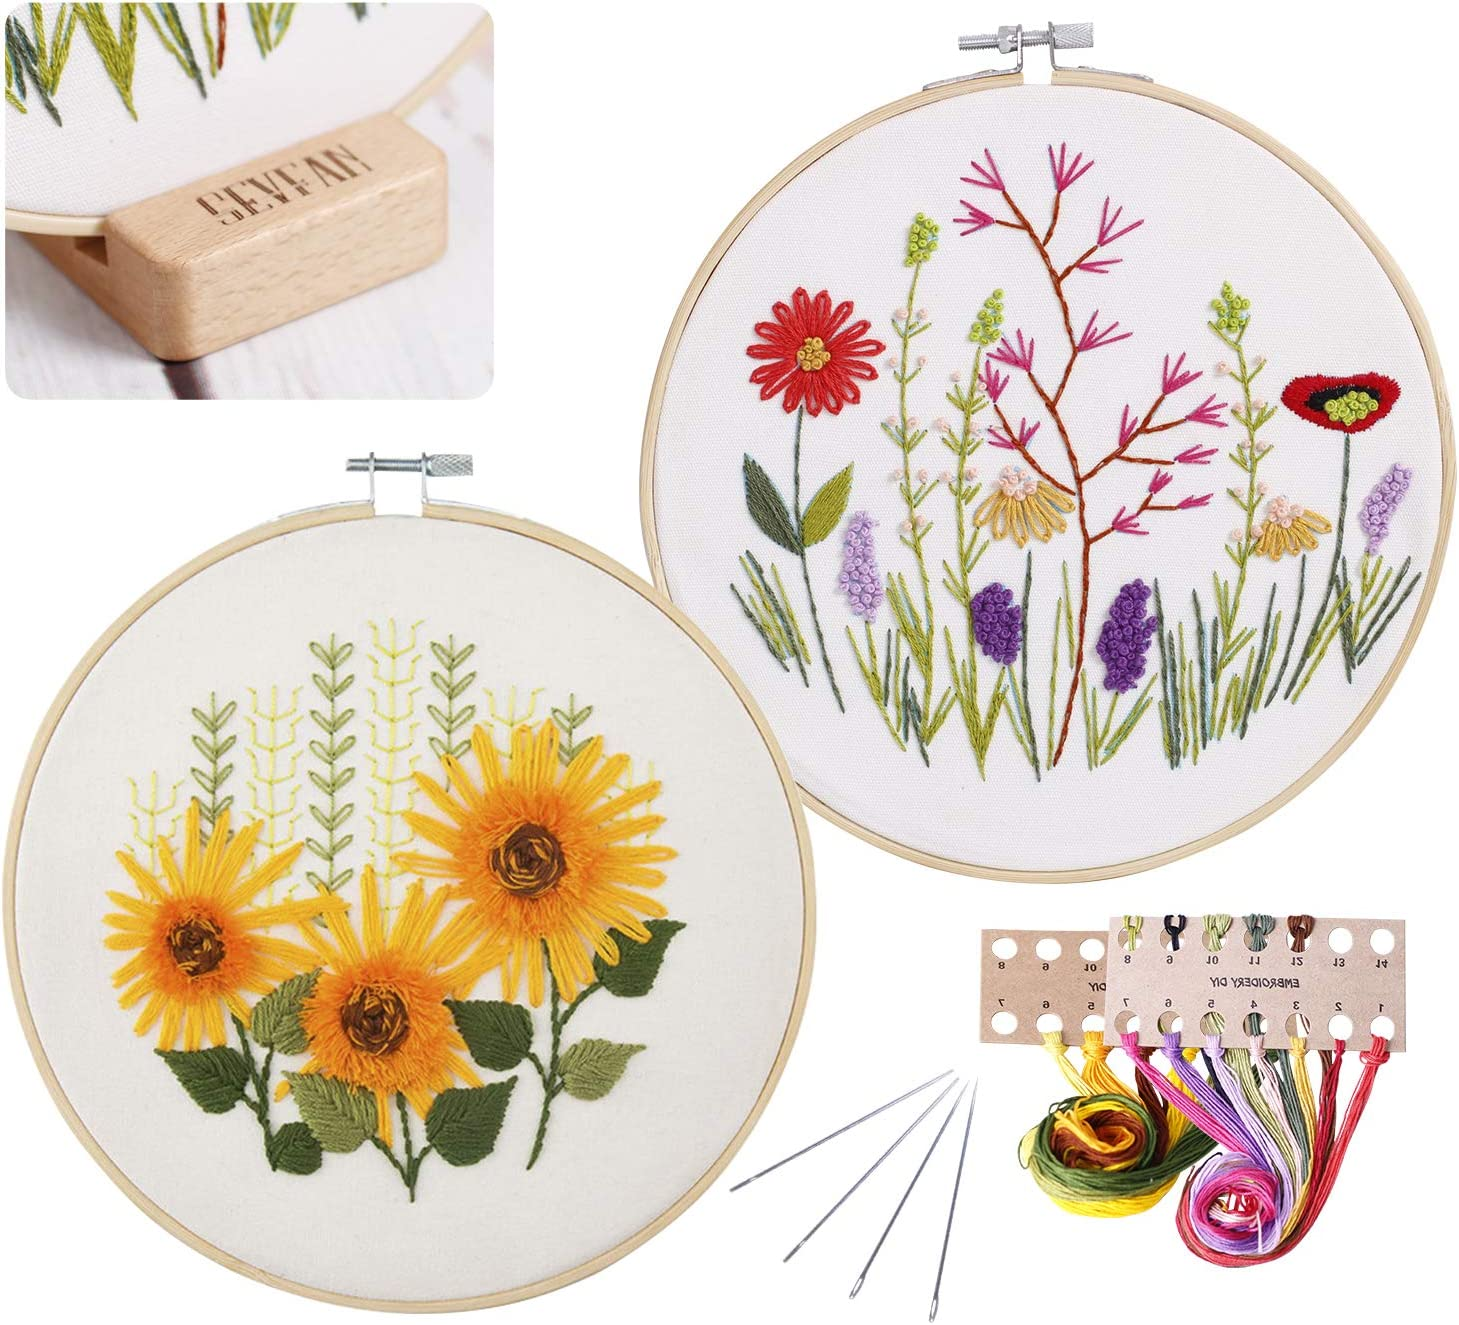 2 sets Embroidery Kits, Full Range of Embroidery Starter Kit with Pattern DIY stitch Kit for Beginner Including Cloth, Hoop, Threads, Tools Kit and one wood stand holder